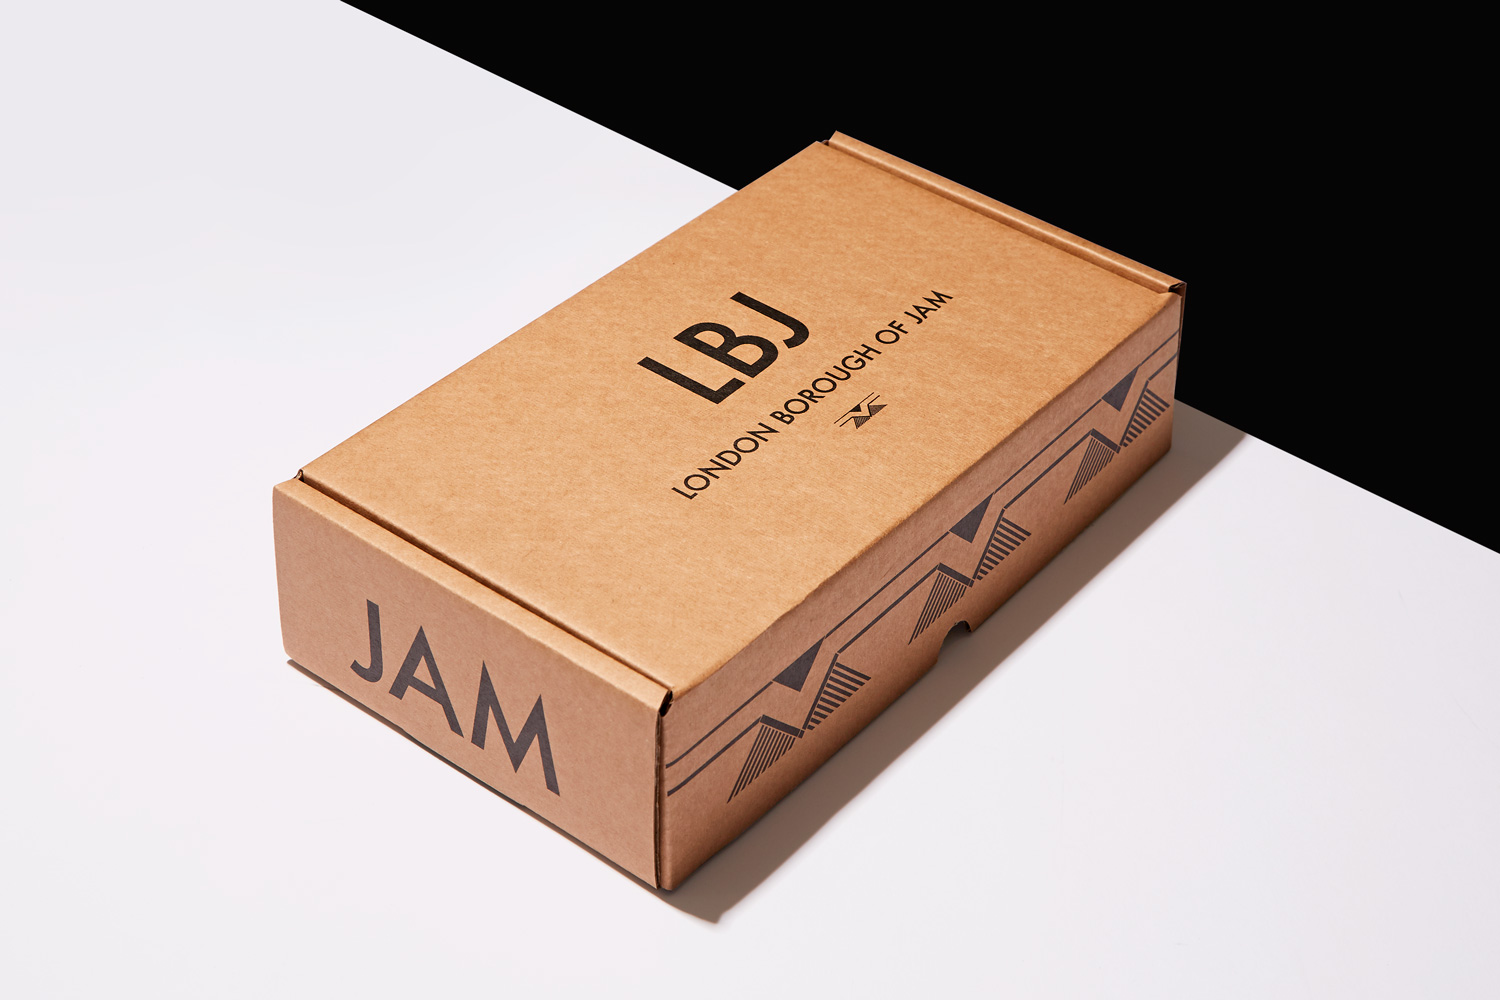 Progress Packaging LBJ London Borough Of Jam Retail Transit Ecommerce Corrugate Box